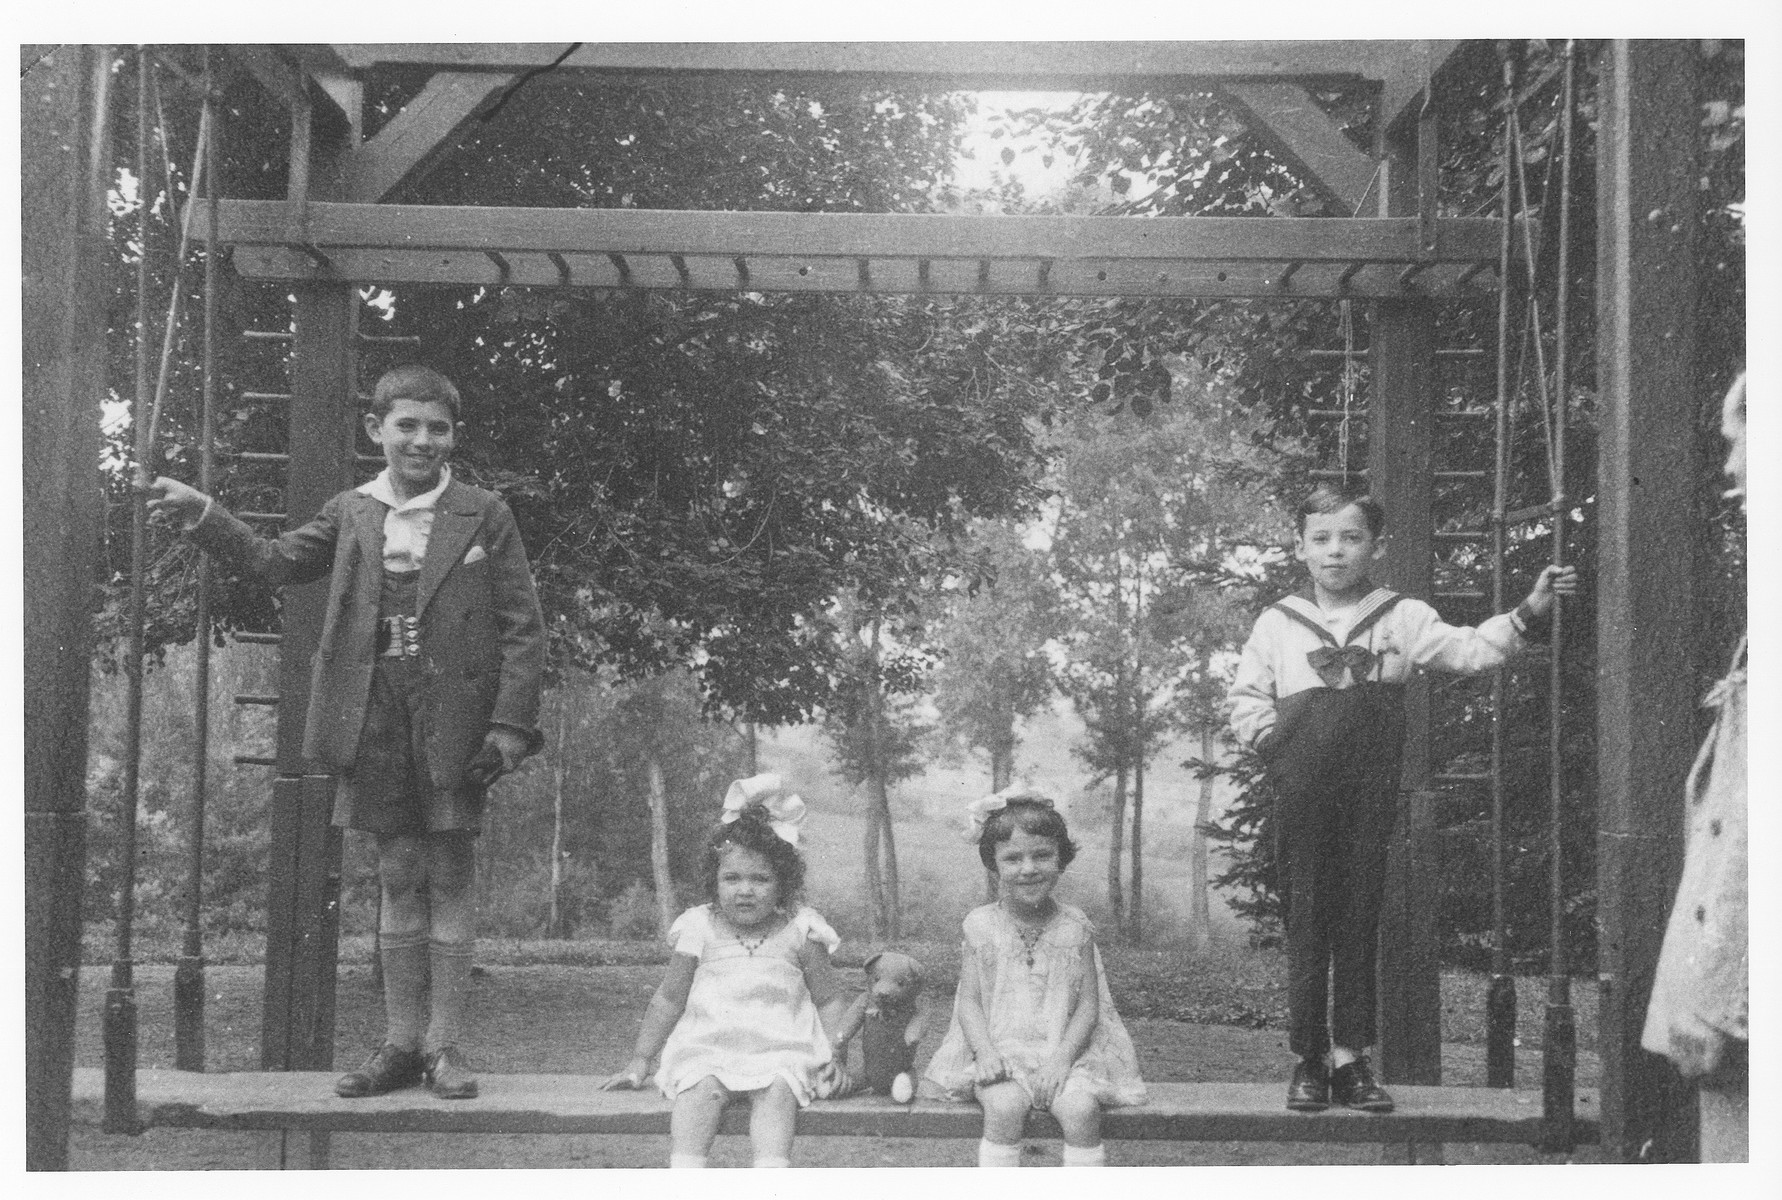 The Goldberg and Kamelgarn children pose on a swing set in a park in Luxembourg, where they were vacationing.  From left to right are Leon, Rose Goldberg, and Leah and Richard Kamelgarn.